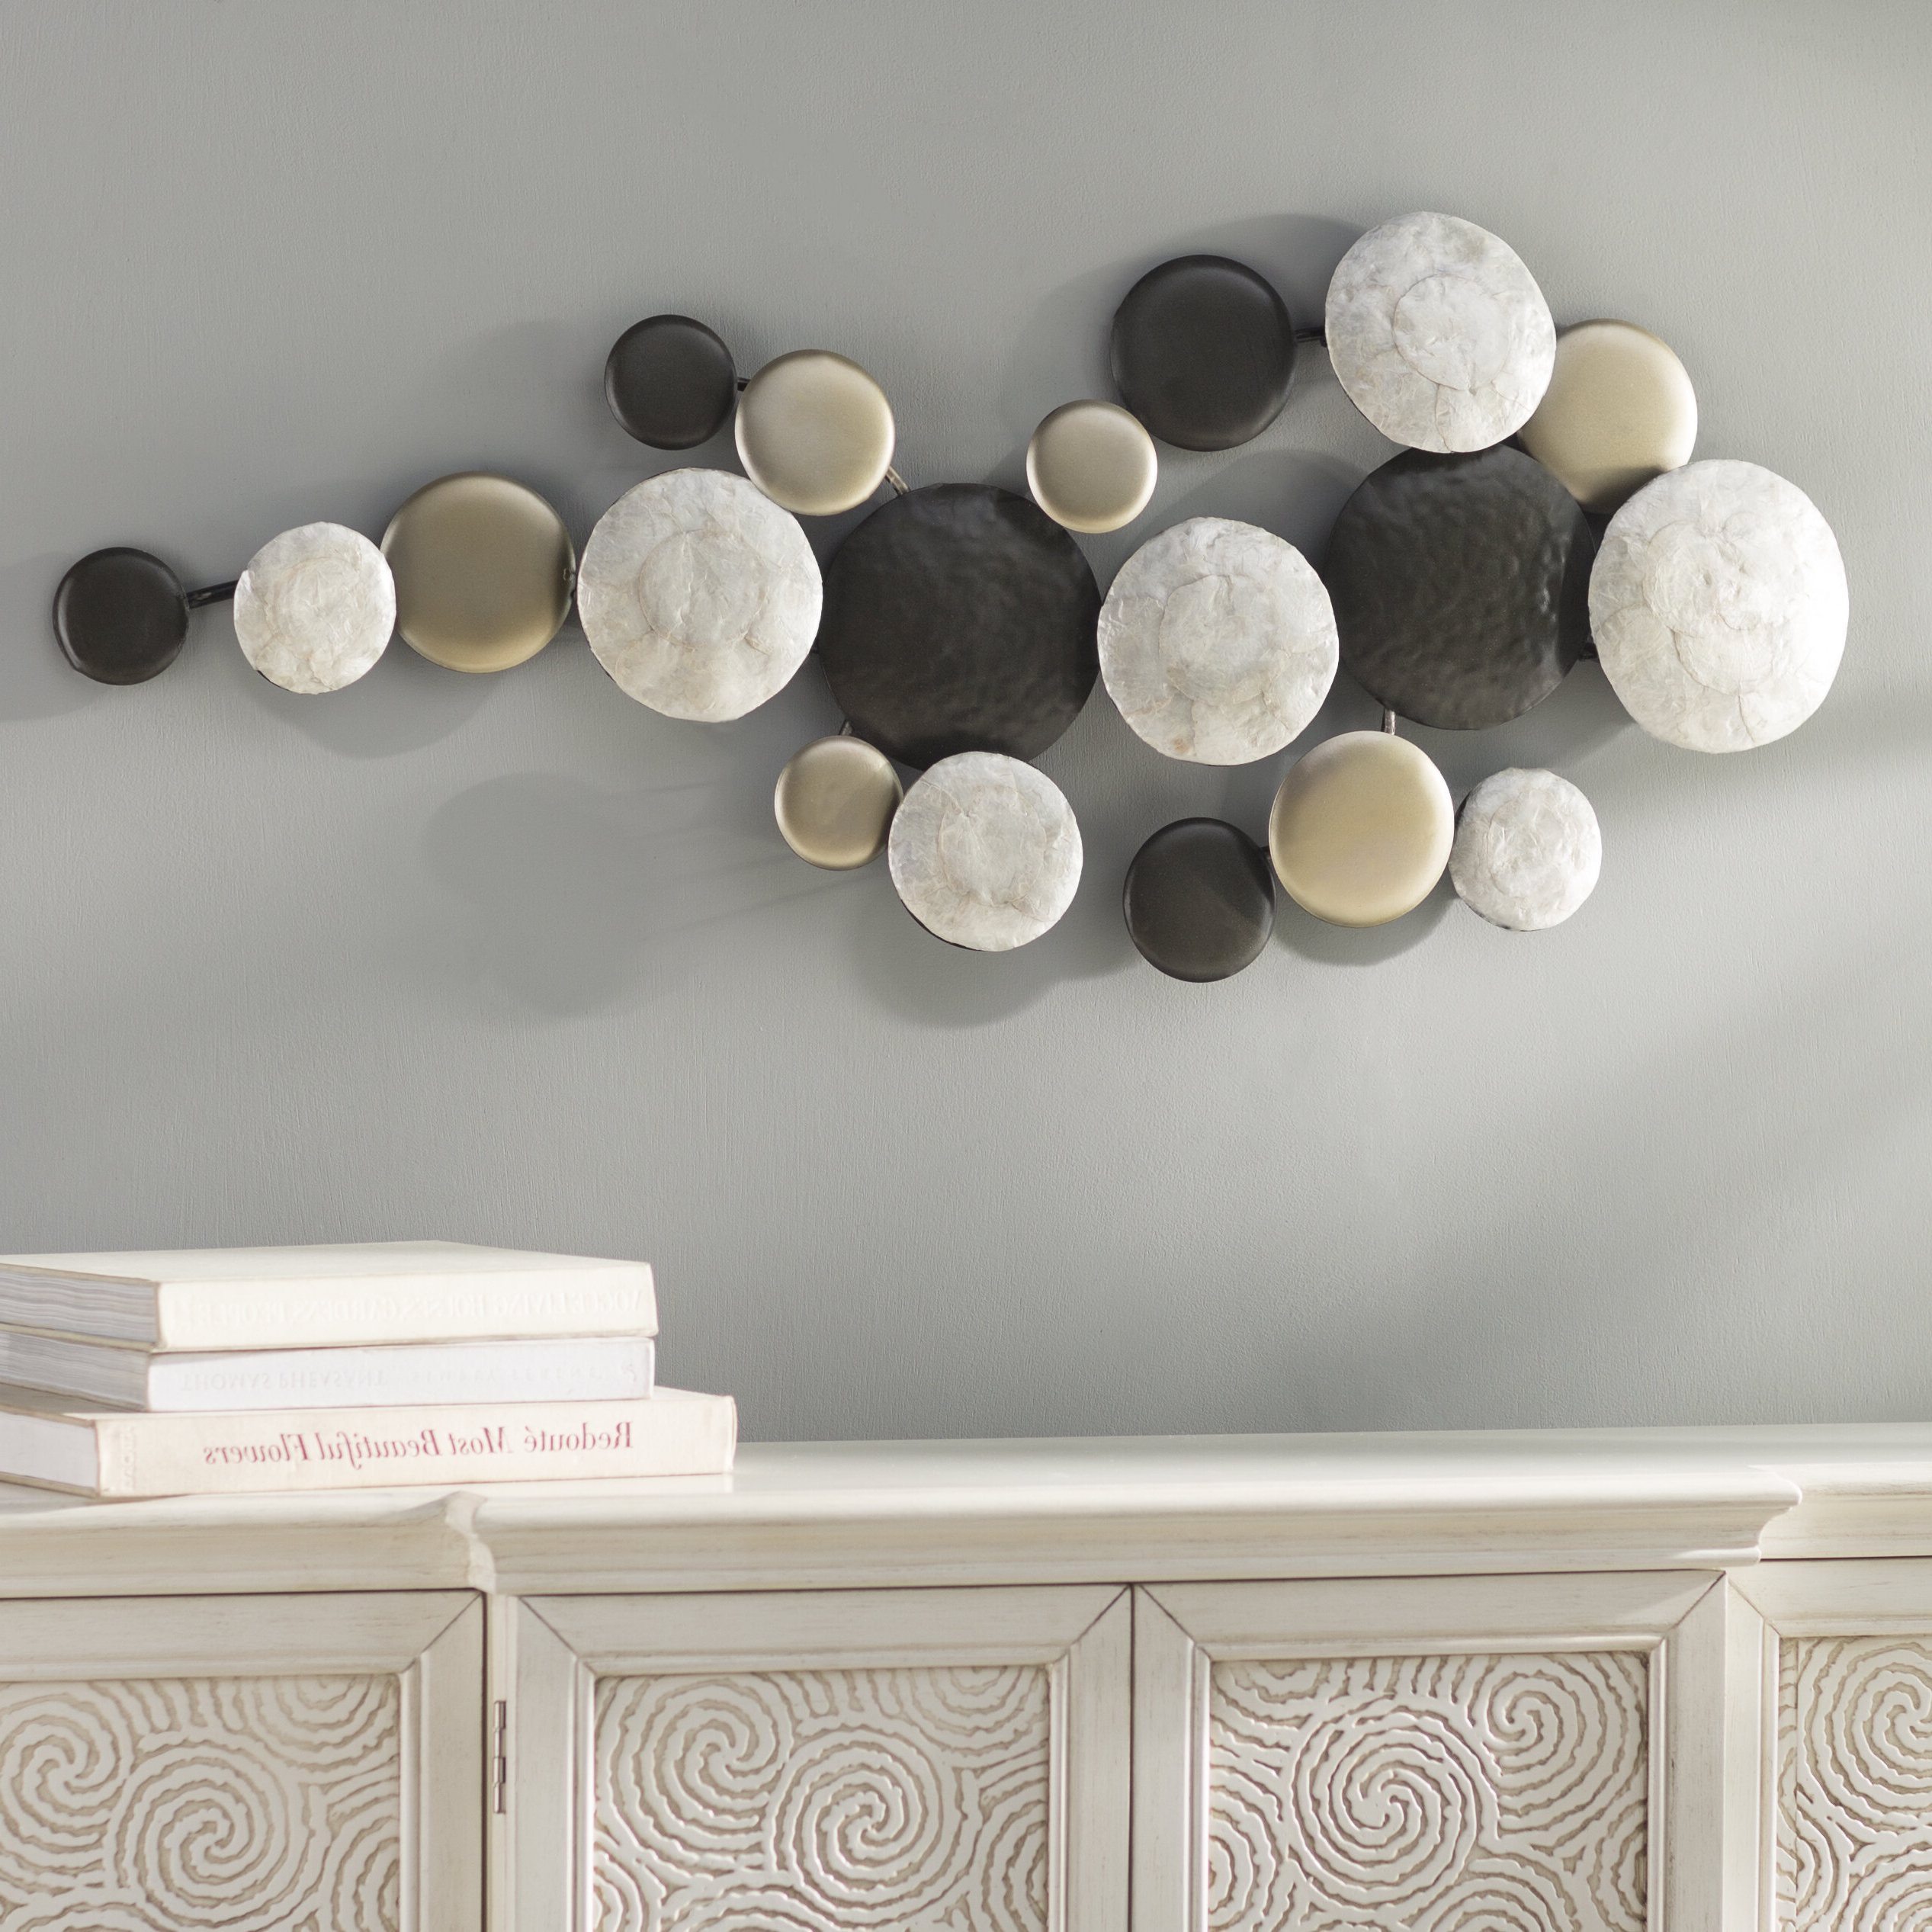 Pebble Trail Wall Decor With Regard To Most Recent Olive/gray Metal Wall Decor By Brayden Studio (View 9 of 20)